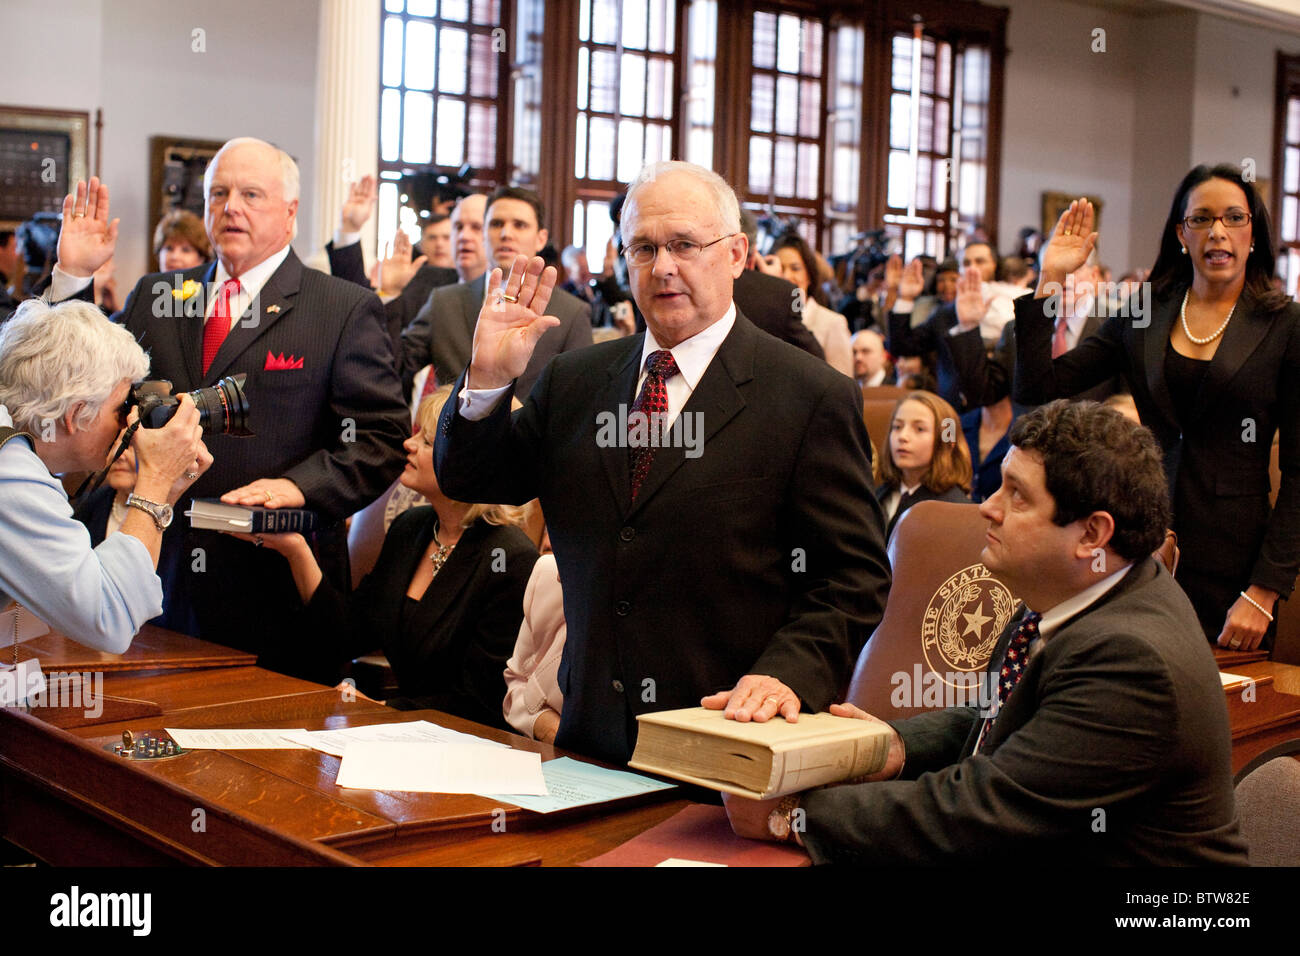 News photographer takes photo of legislator during swearing-in ceremony for members of the of the Texas House of - Stock Image